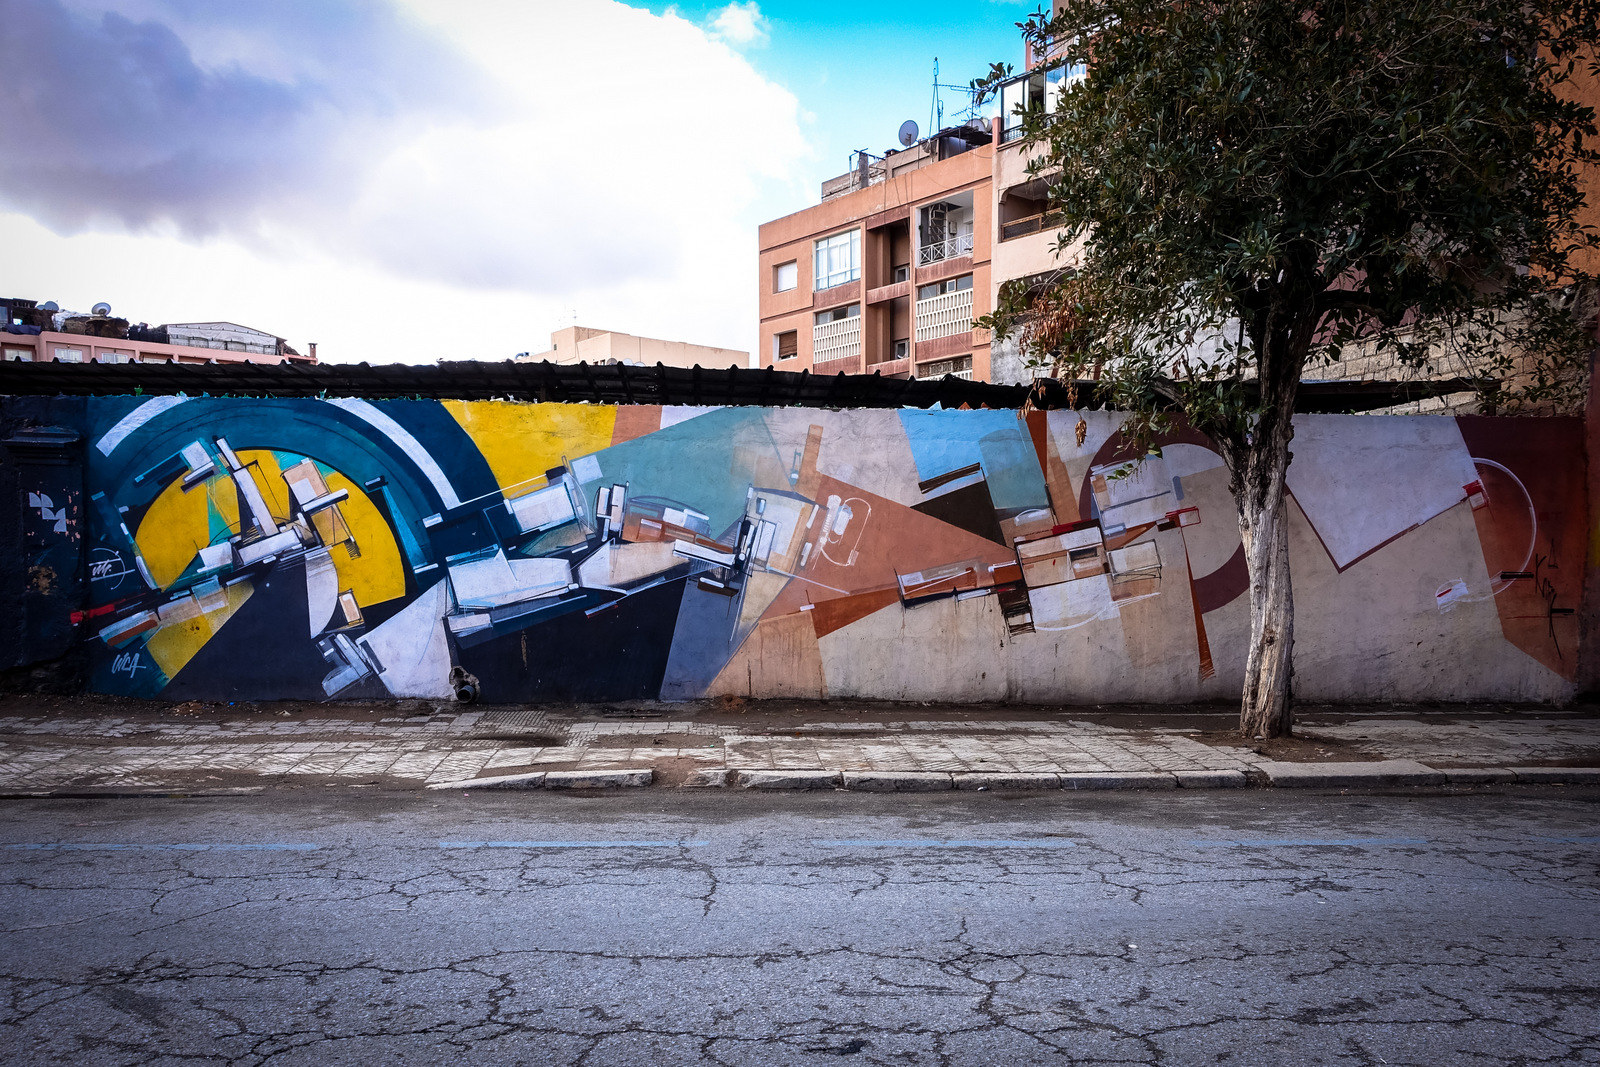 lx.one, swizz & kofie murals in gueliz, marrakesch